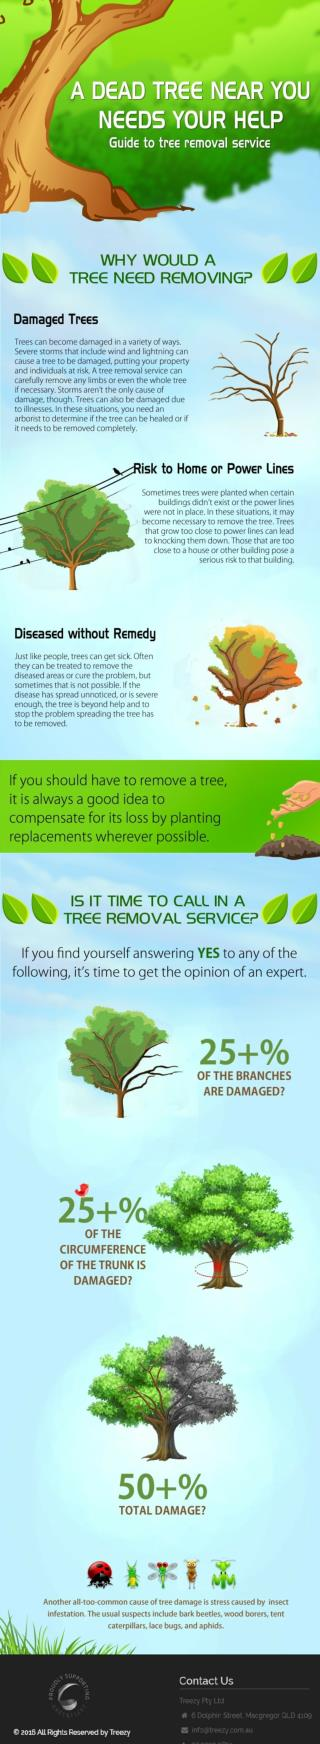 Guide to Tree Removal Services